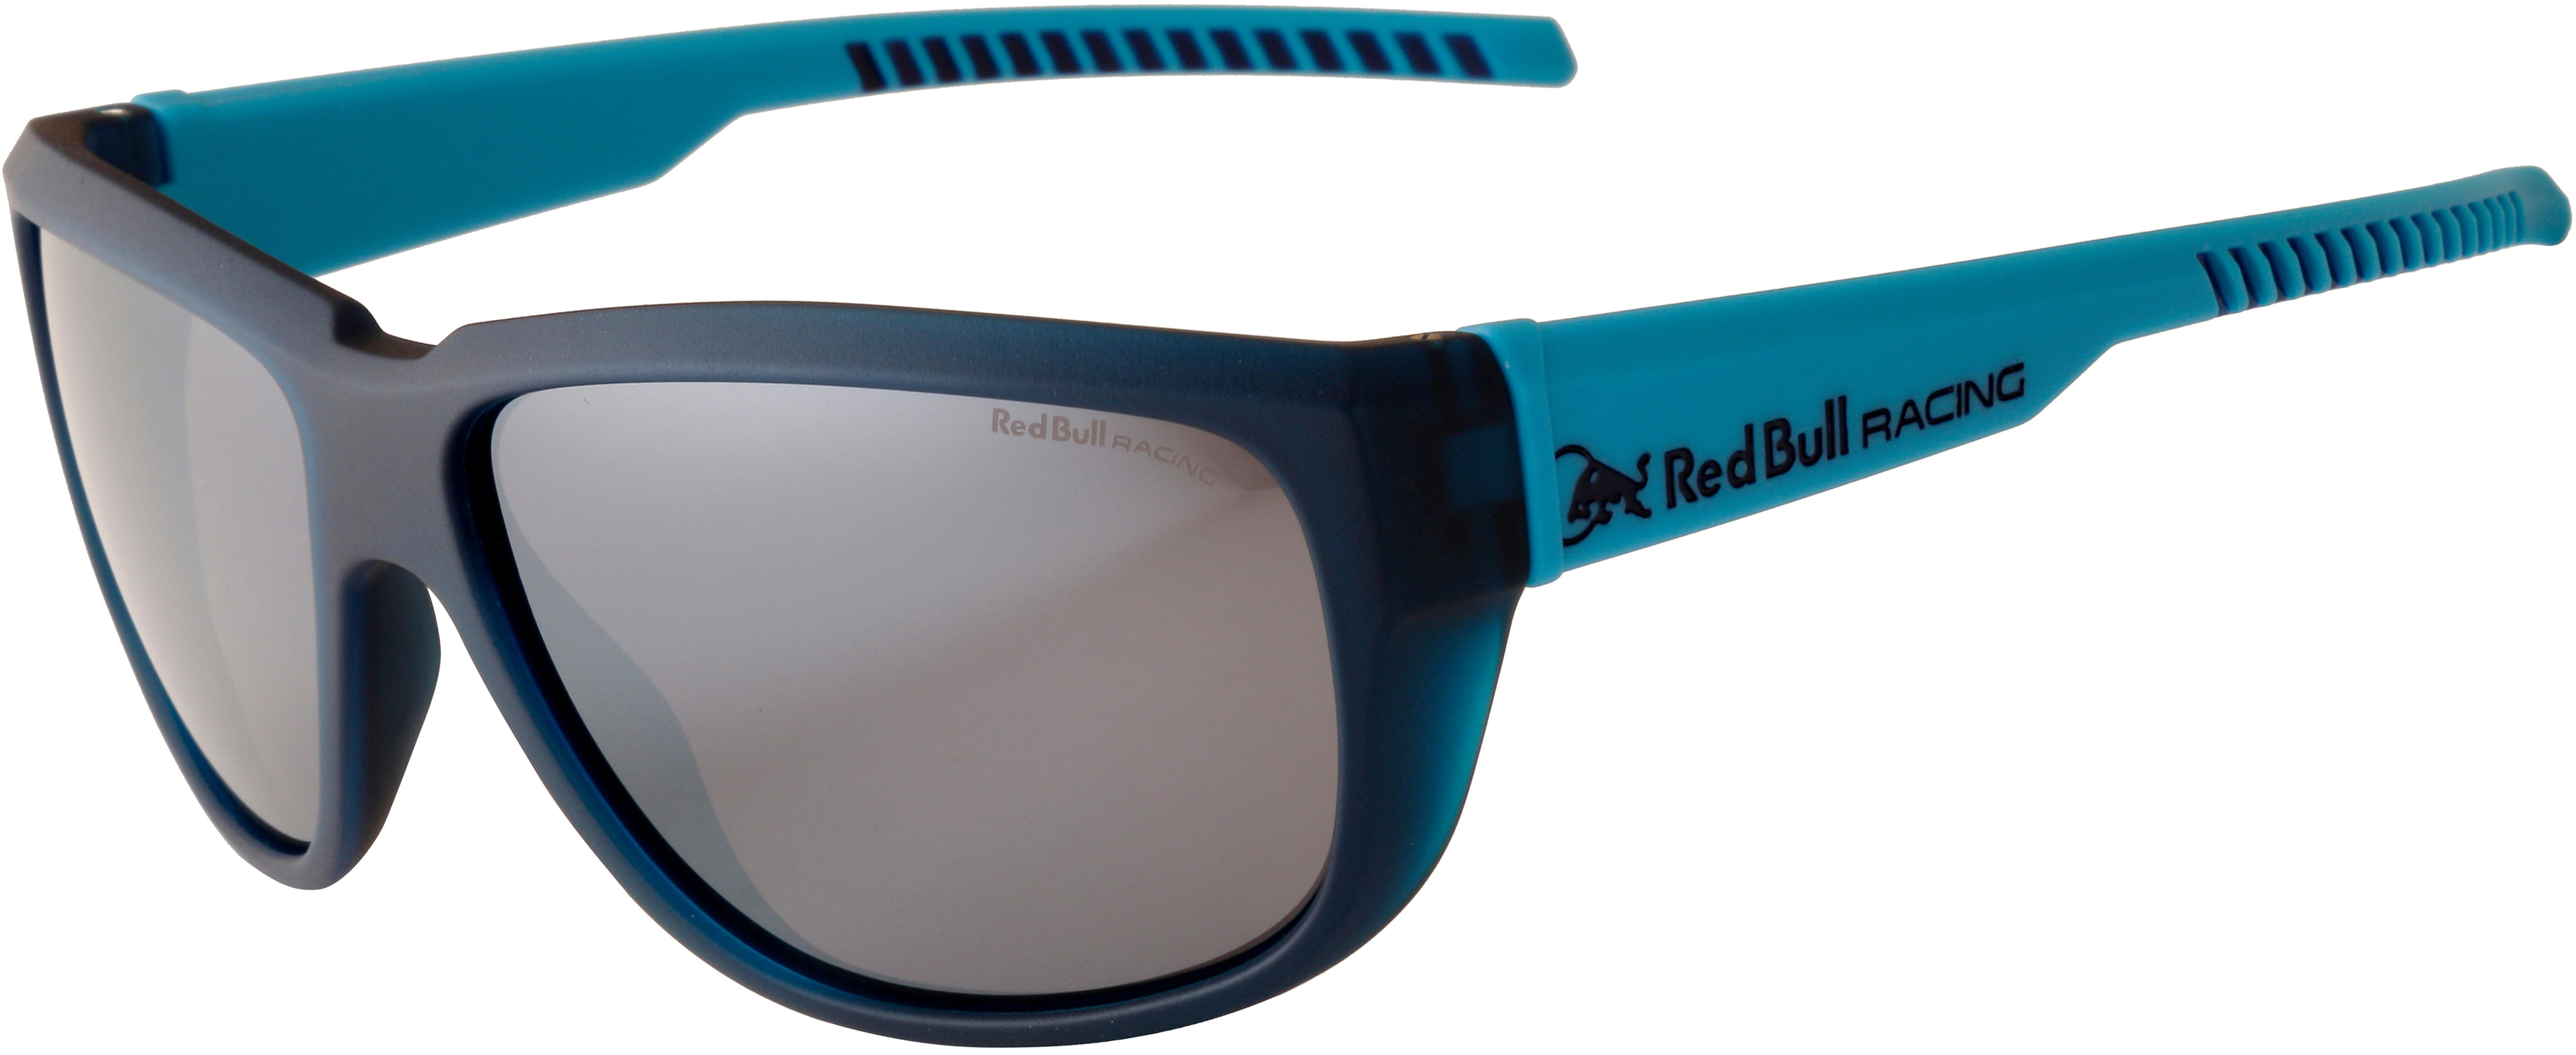 Amazonia Mutig Palo Sonnenbrille Aus Holz Small Limited Edition